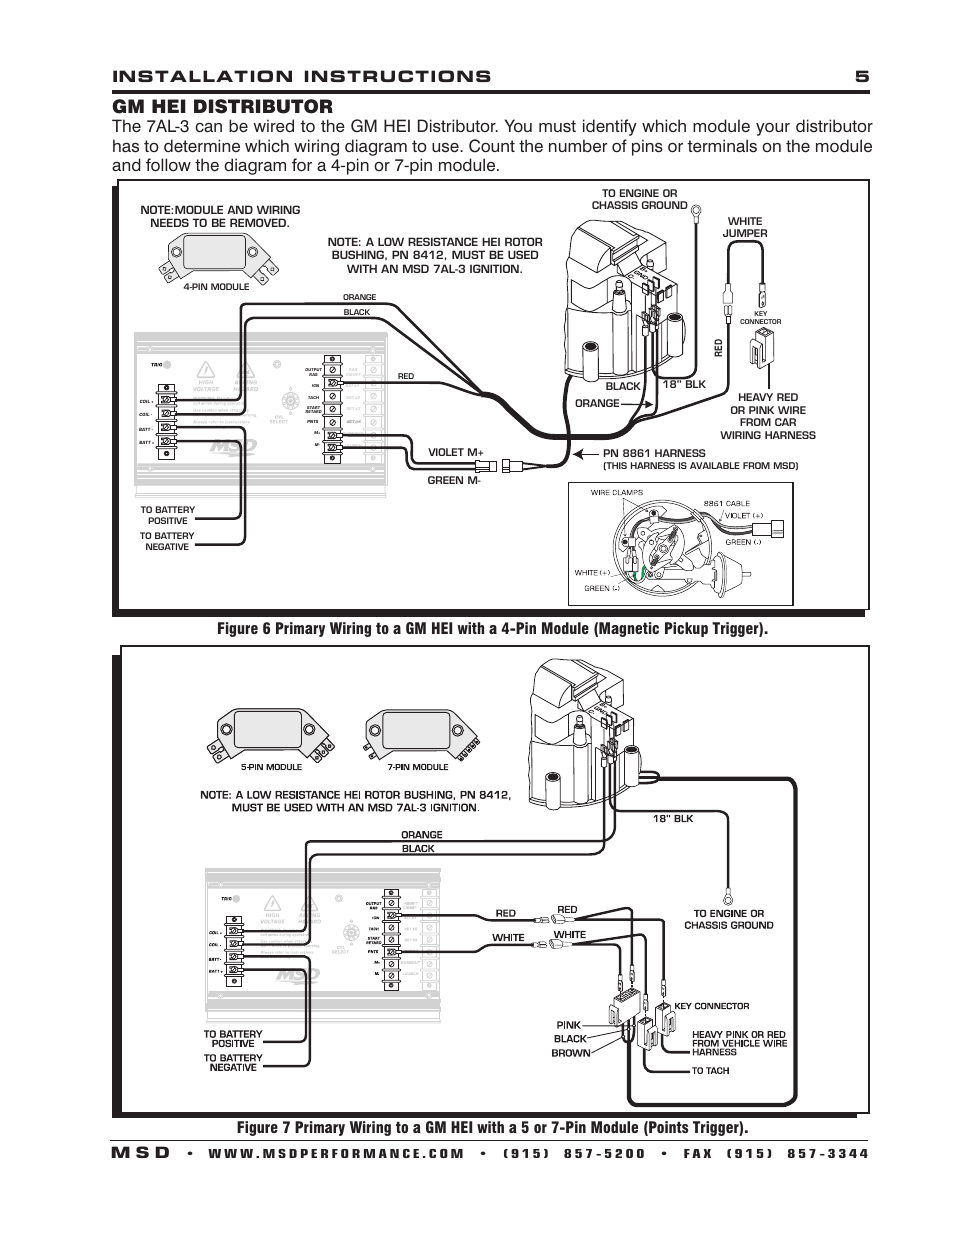 msd 7330 7al 3 ignition control installation page5?resize\\\=665%2C861 crane hi 4 wiring diagram revtech 100 diagram, badlands crane hi 4 ignition wiring diagram at virtualis.co